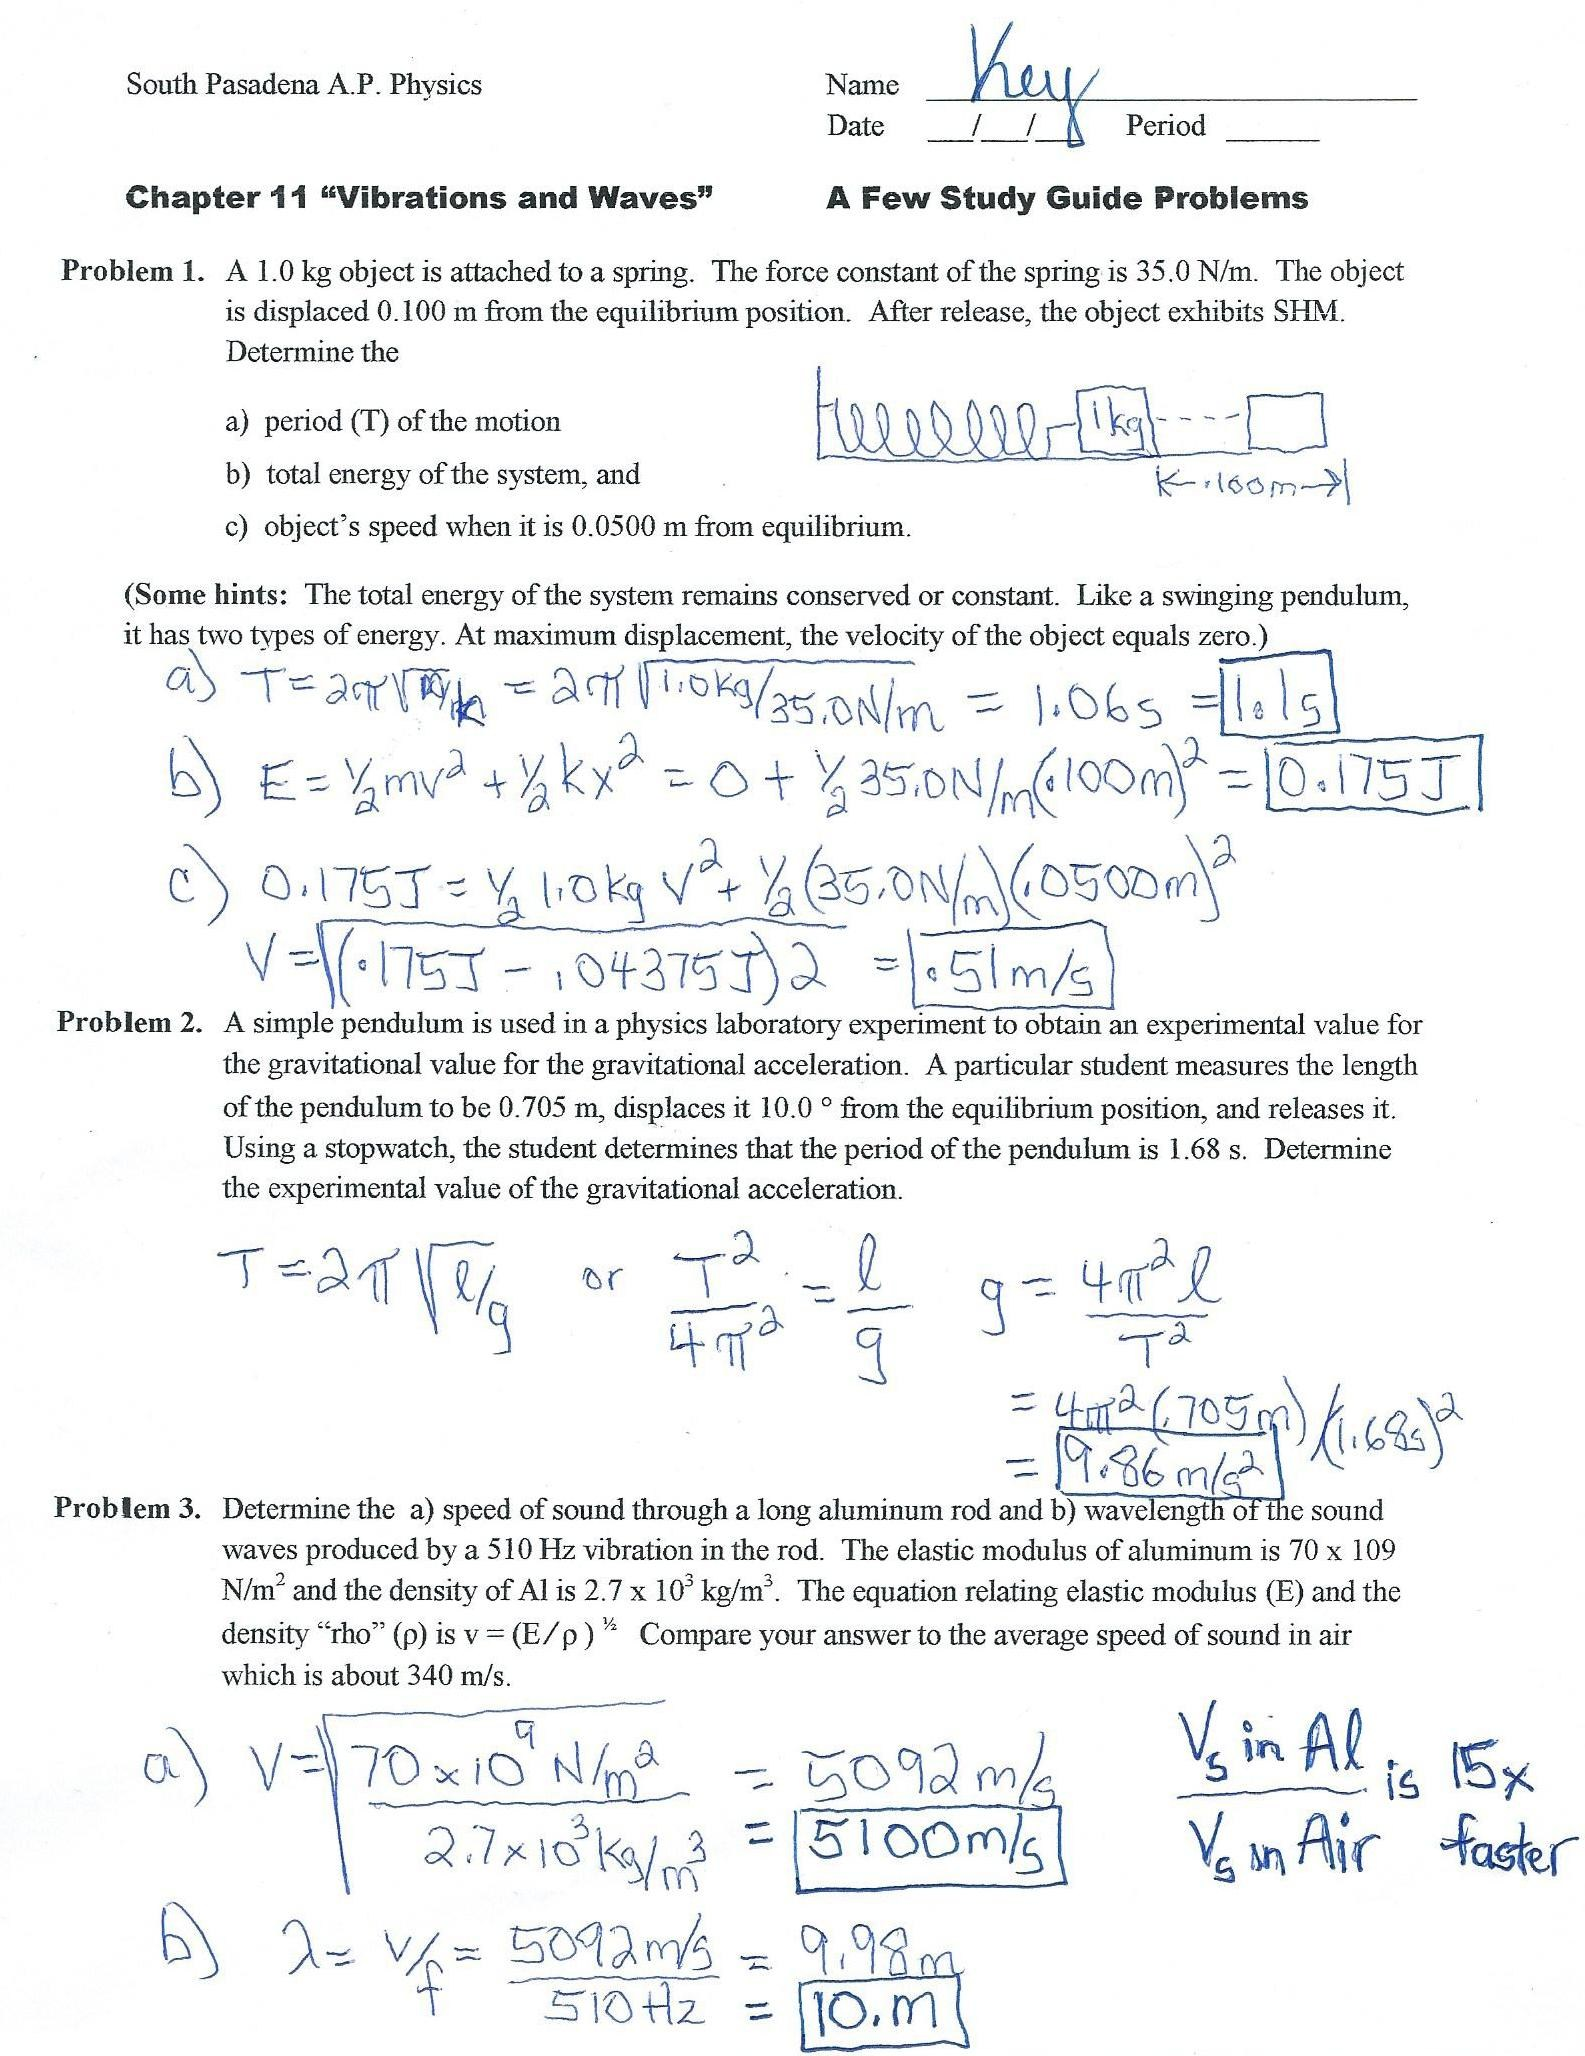 worksheet Conceptual Physics Worksheets pdf answer for physics lab 28 pages scientific method uncategorized conceptual worksheets